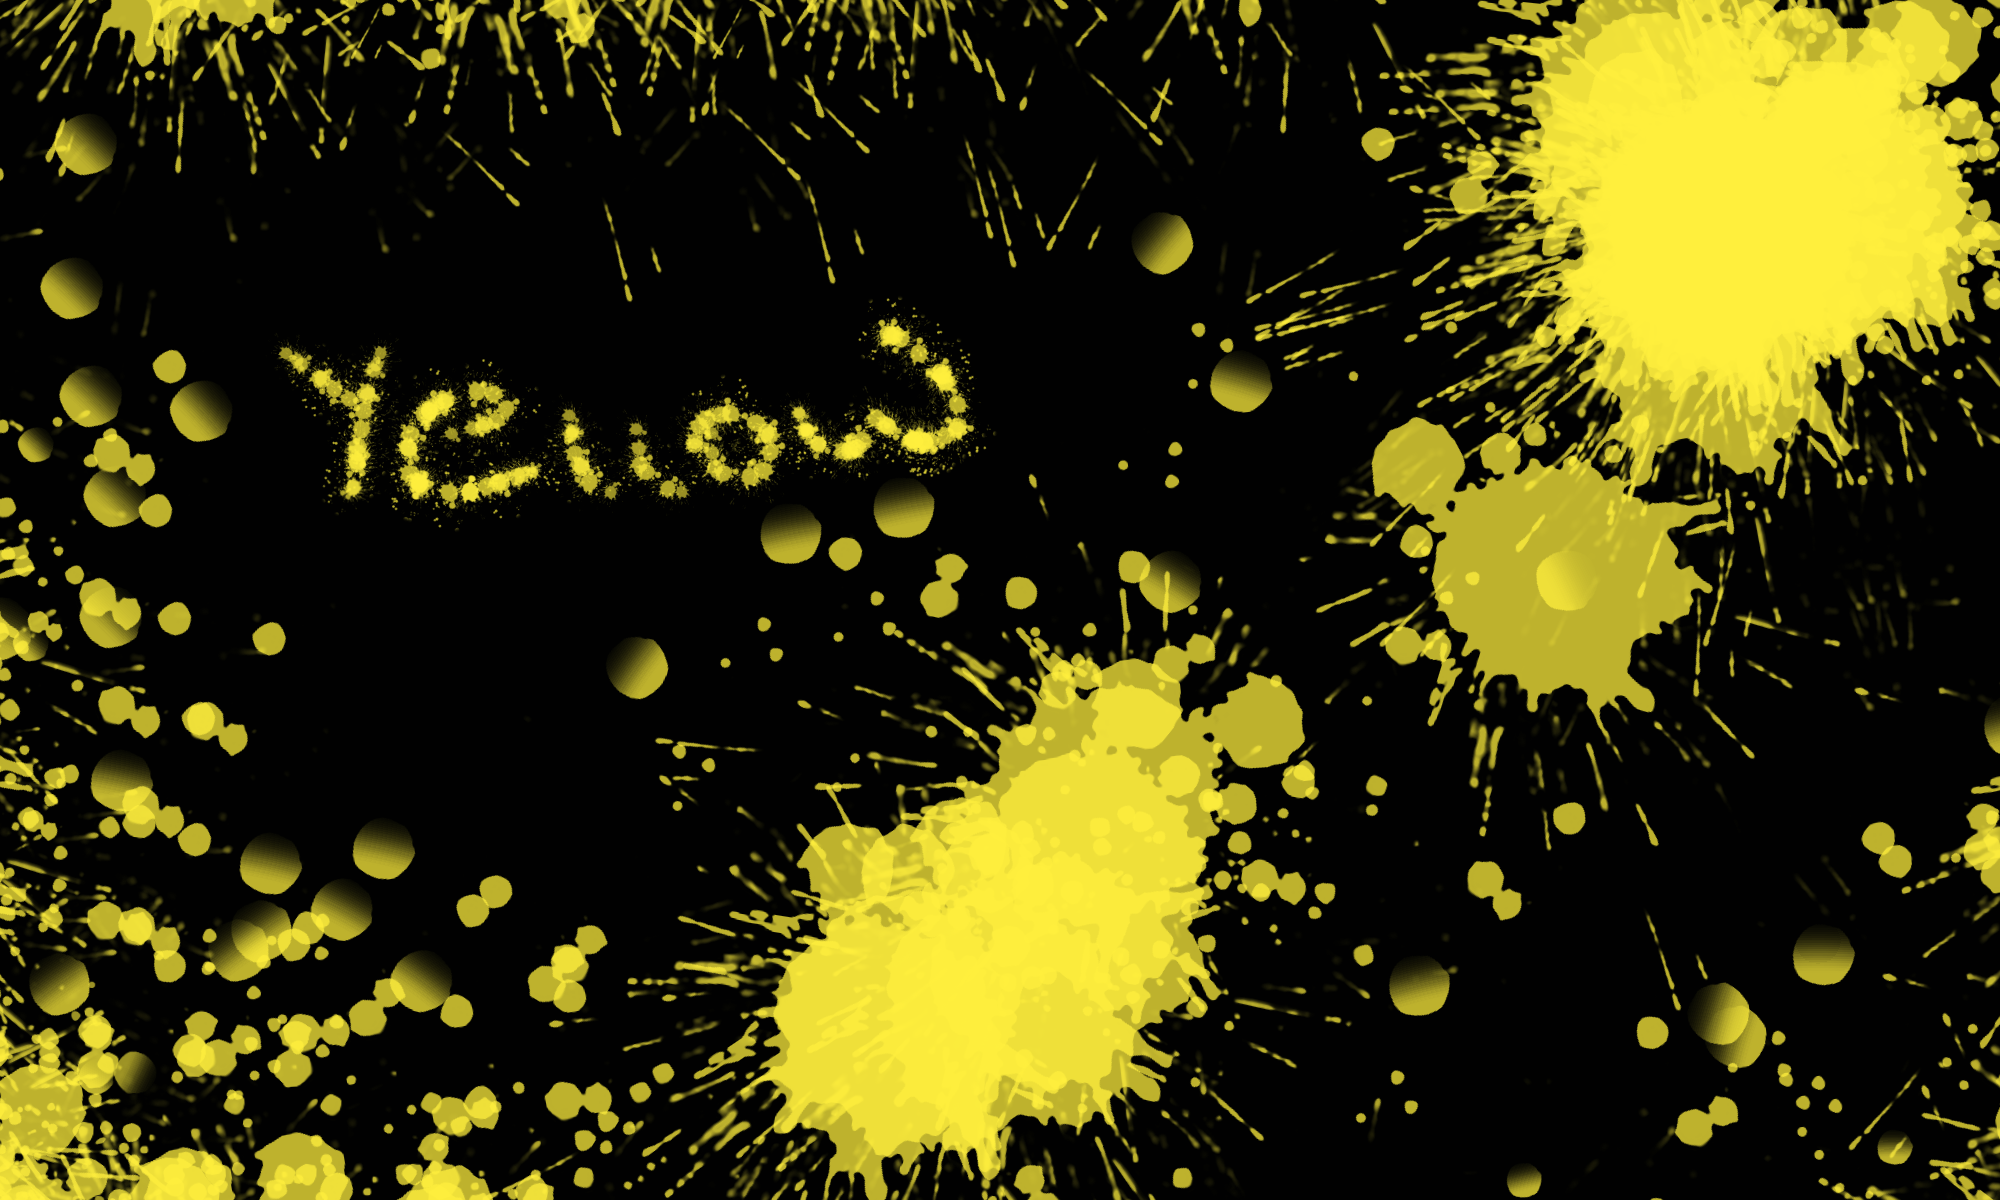 Yellow color stains